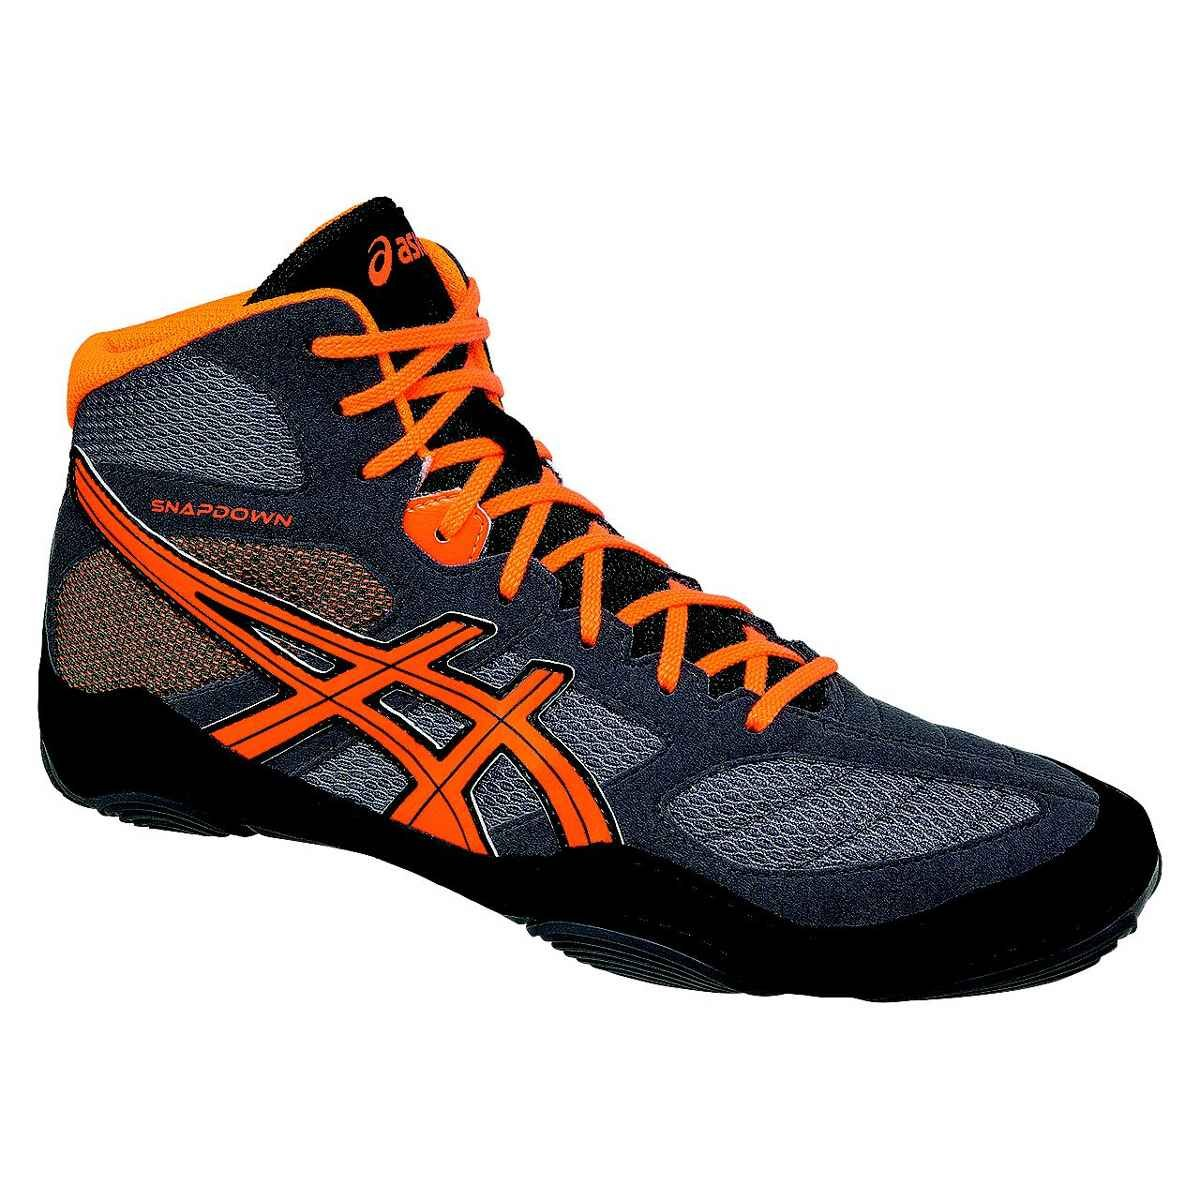 ASICS Men's Snapdown Wrestling Shoe, Shark/Hot Orange/Black, 11 M US by ASICS